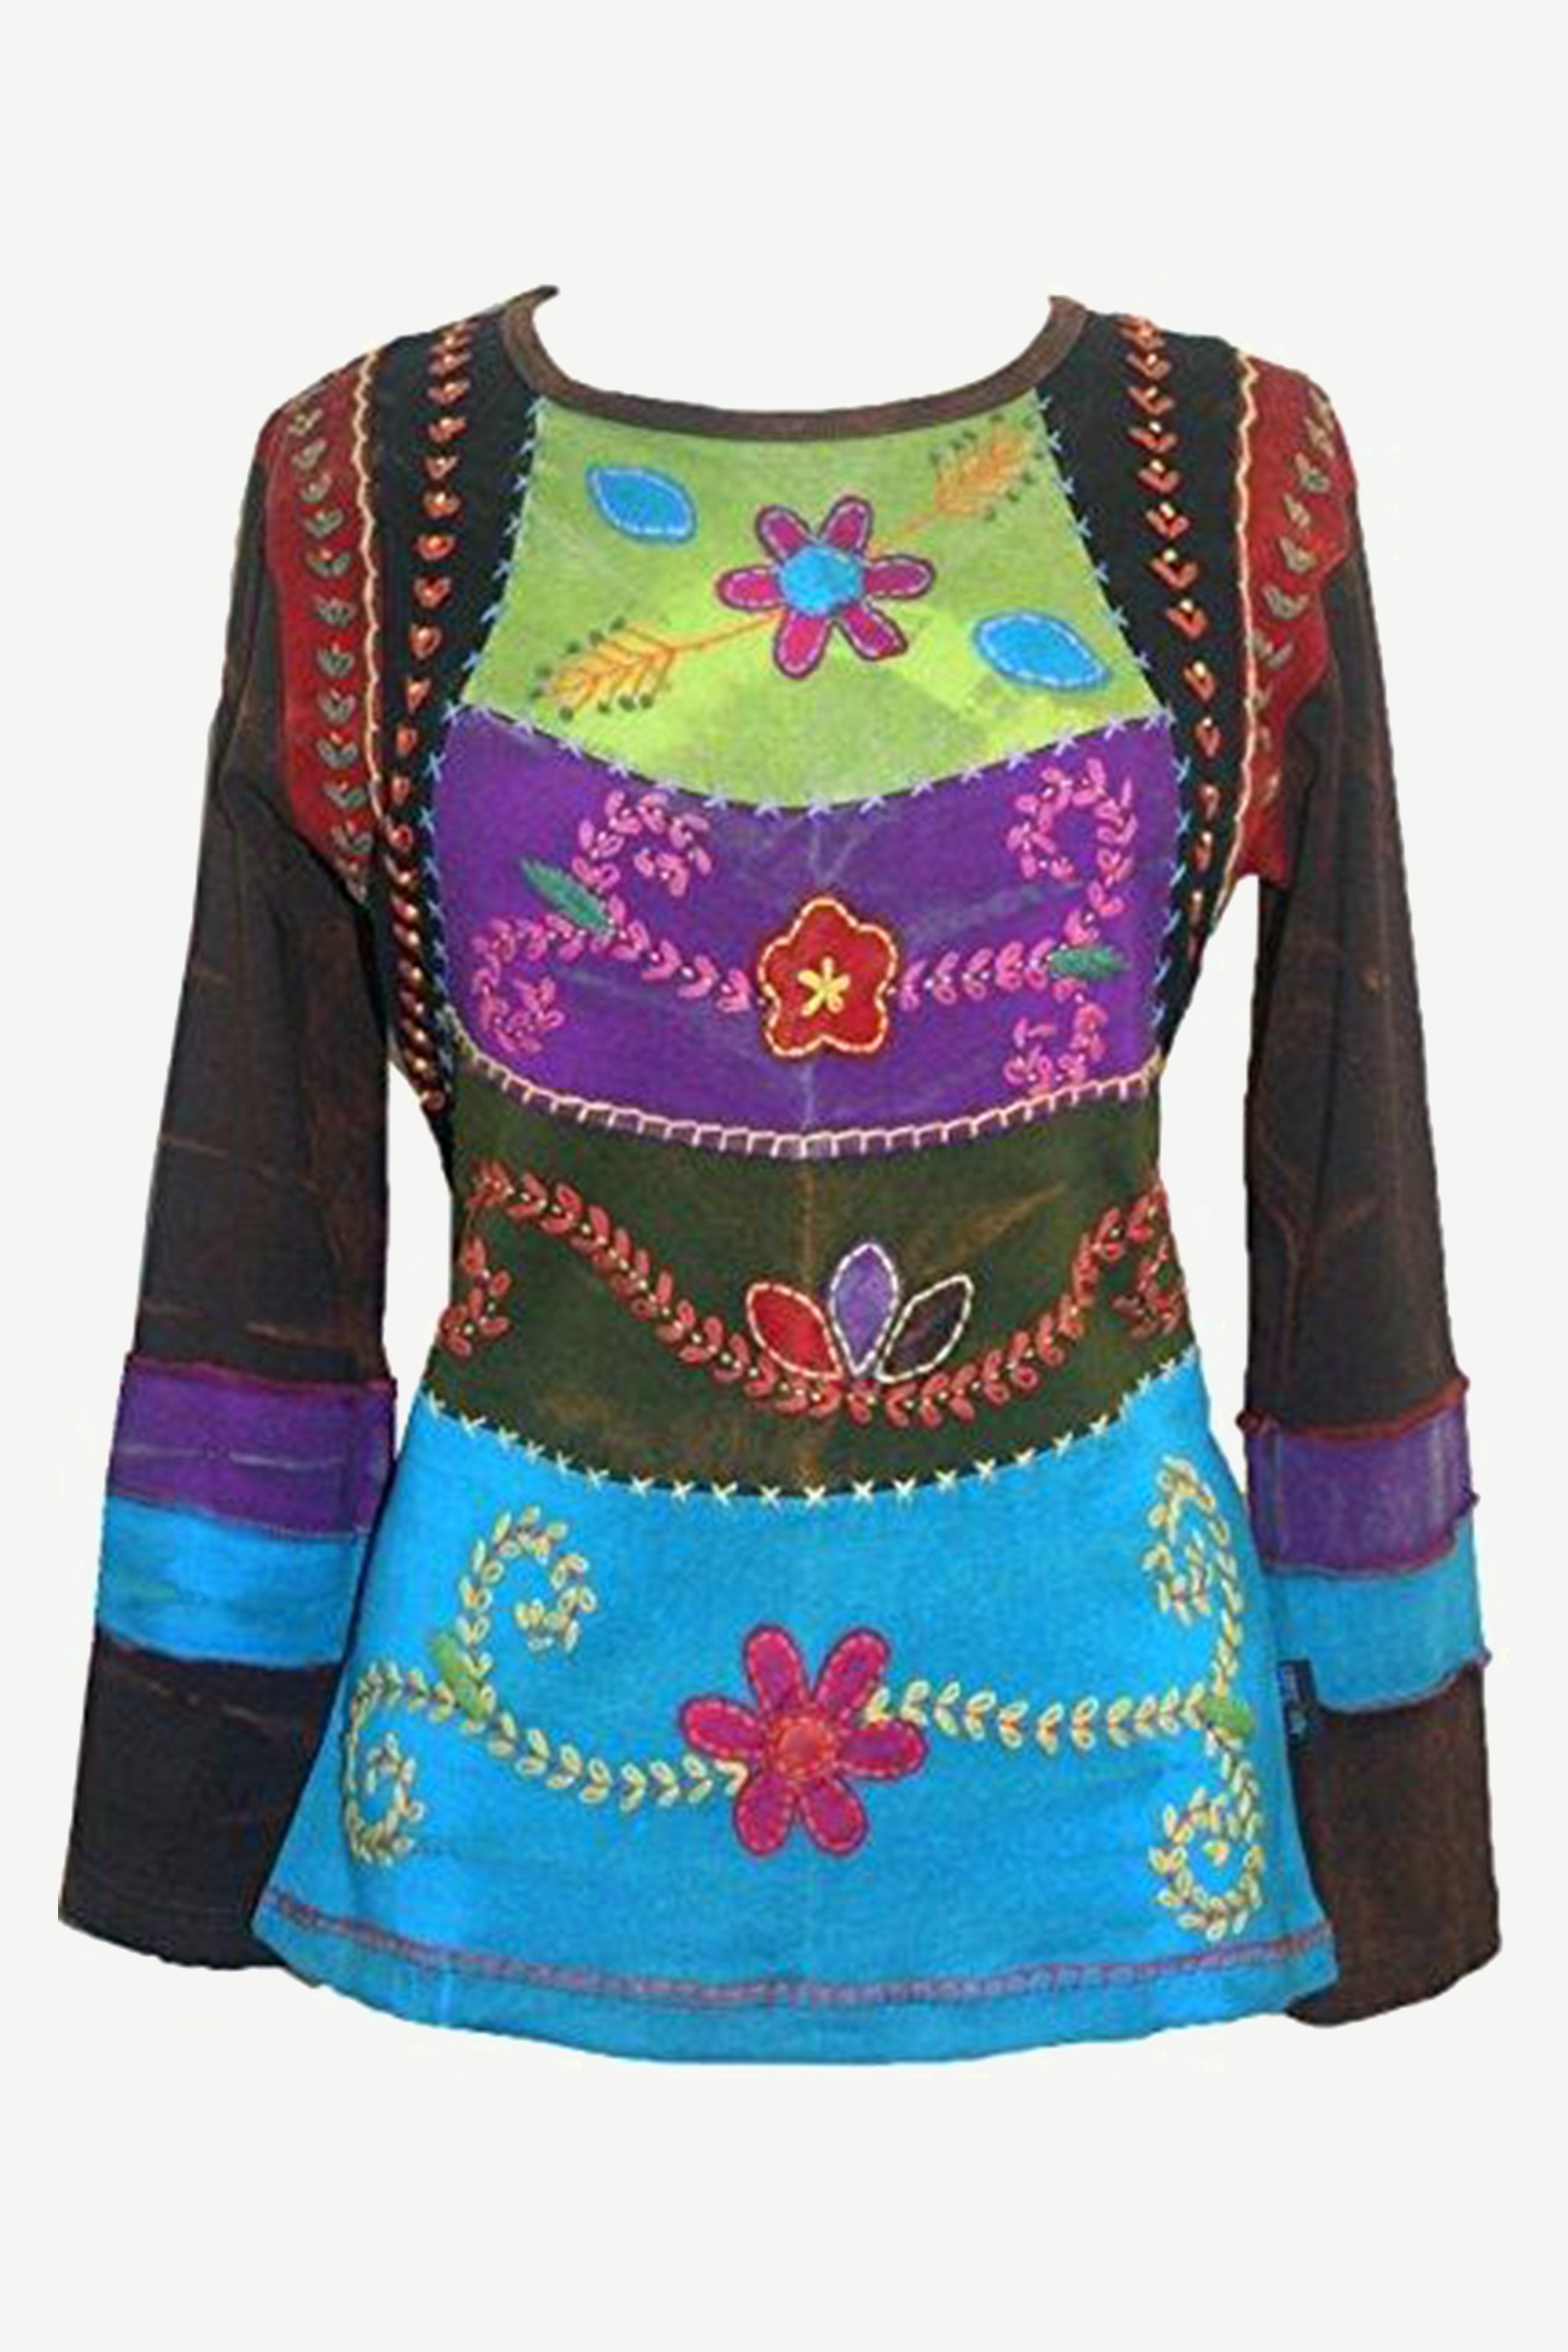 Rib Cotton Tie Dye Embroidered Floral Bohemian Gypsy Top Blouse - Agan Traders, Purple